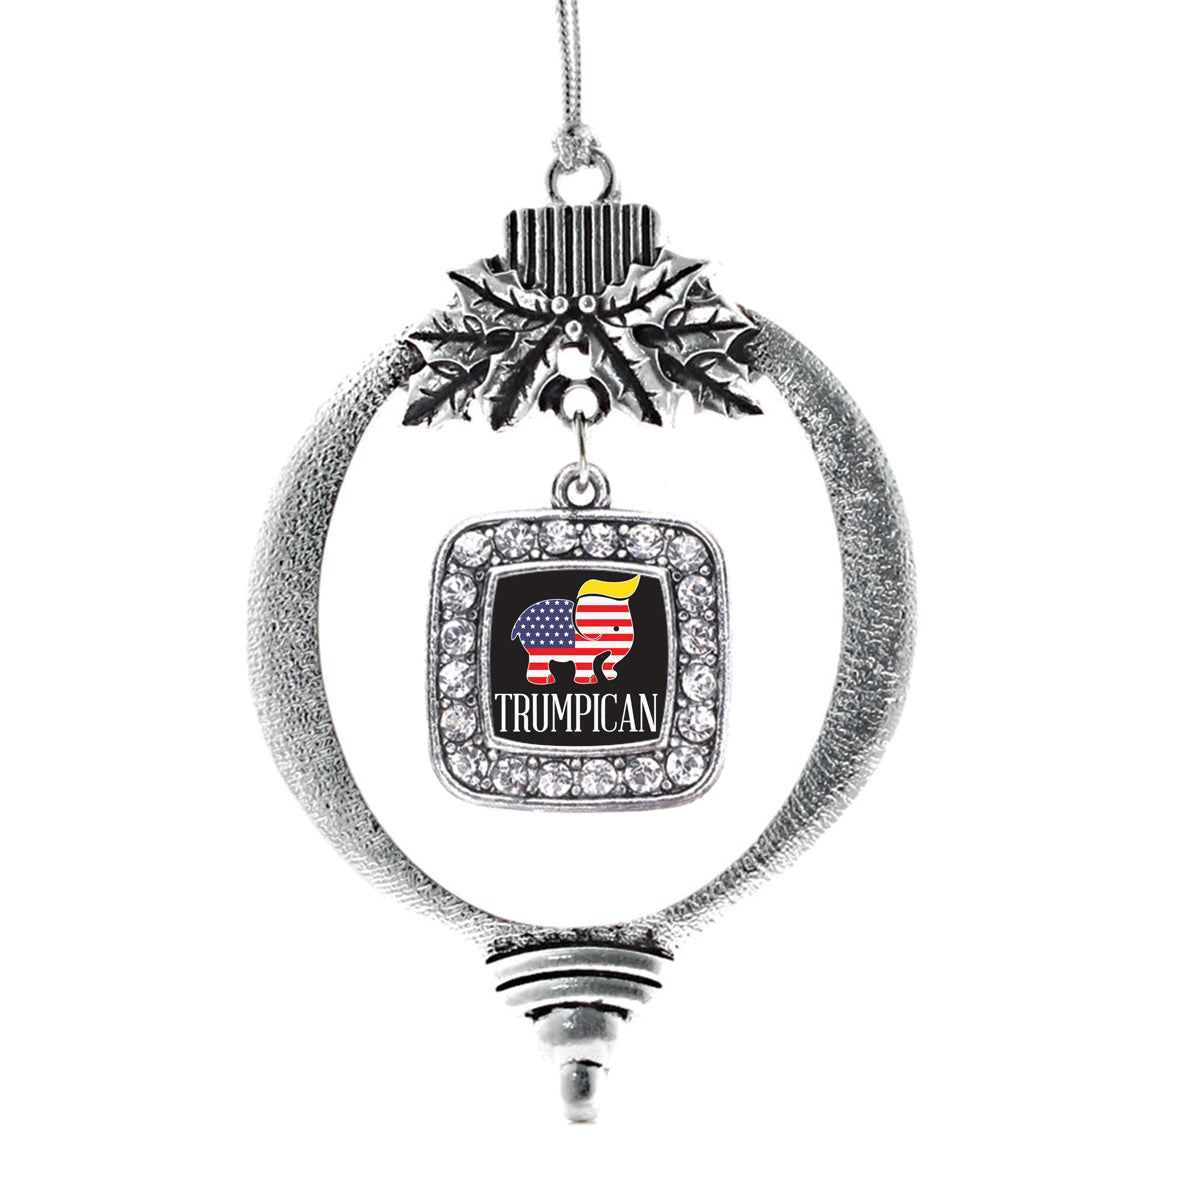 Trumpican Square Charm Christmas / Holiday Ornament